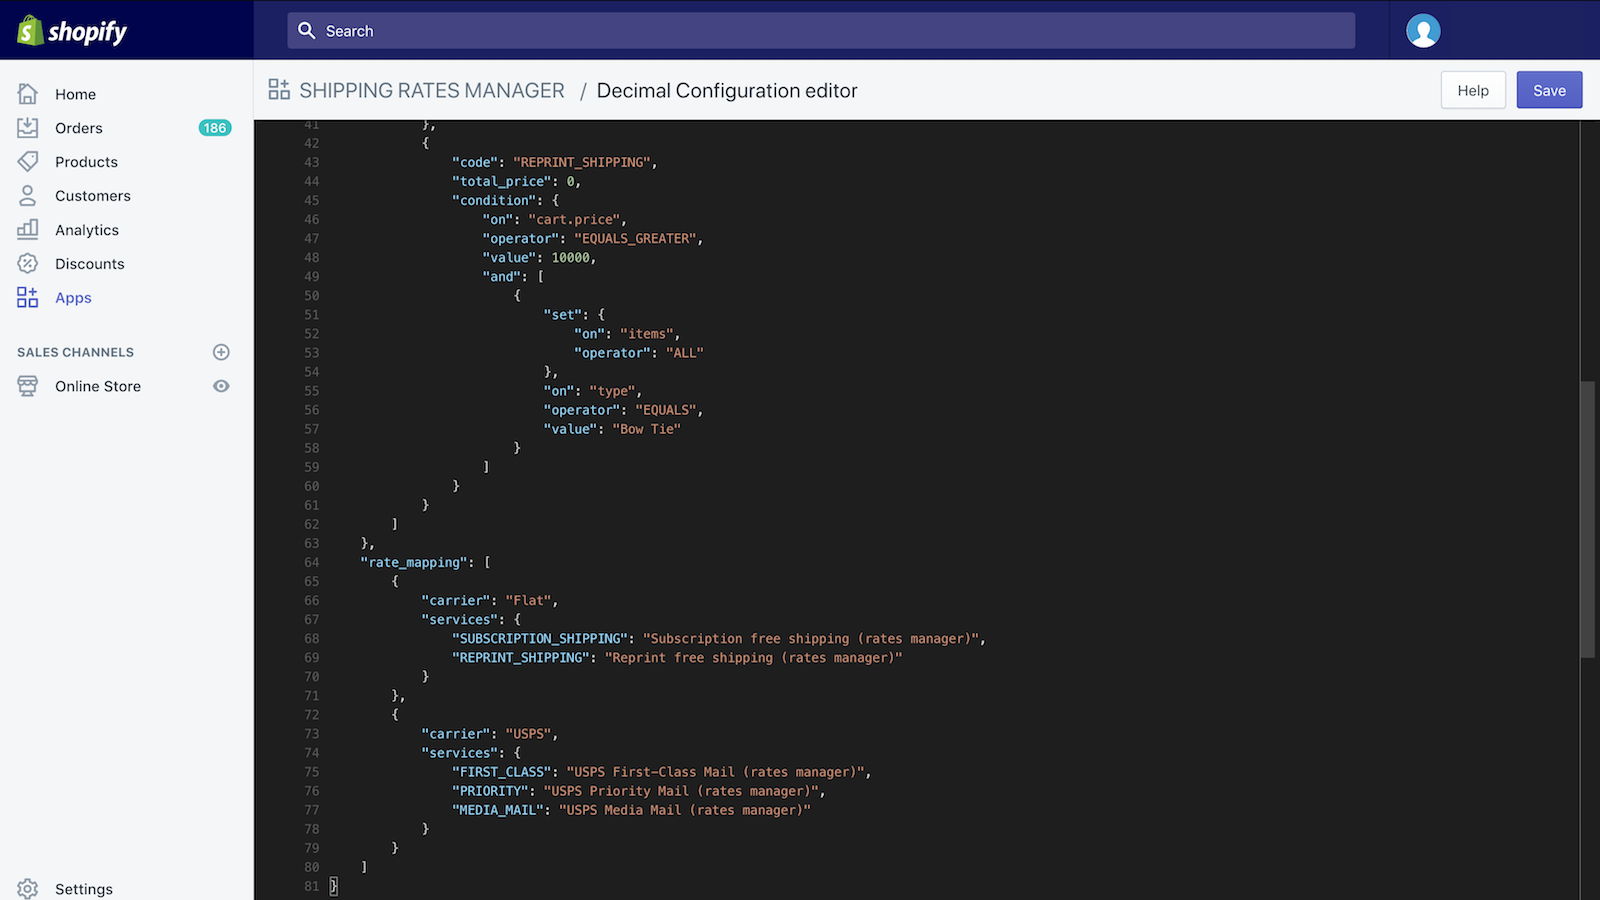 Bottom of configuration editor with example code